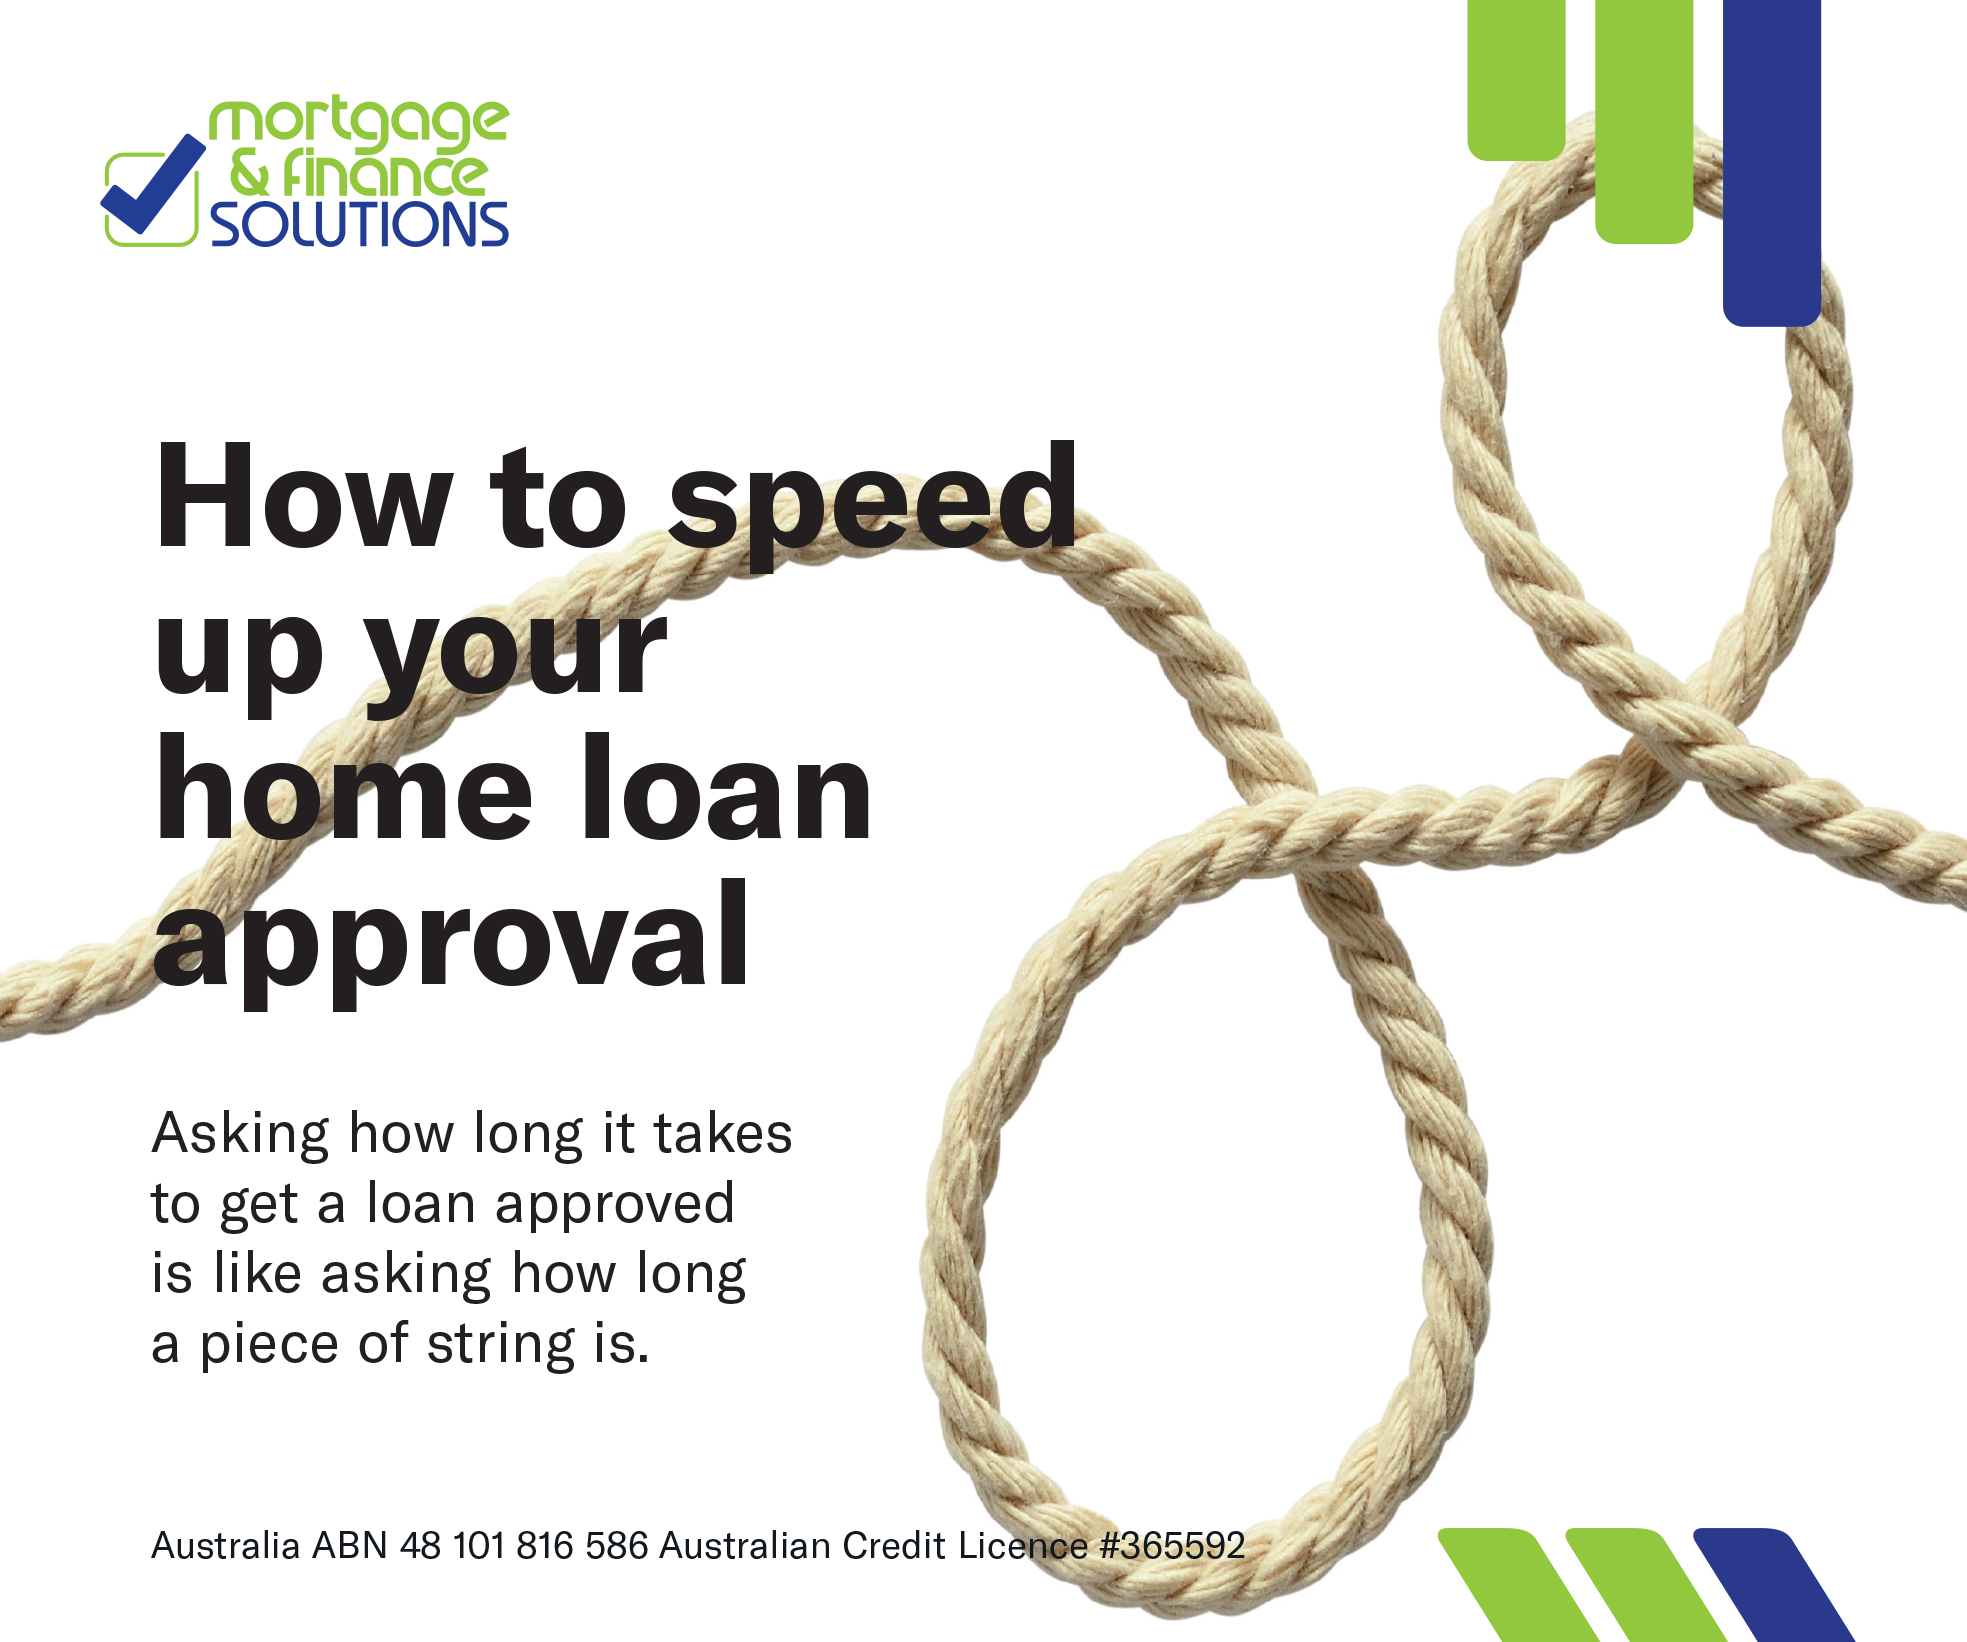 How to speed up your home loan approval